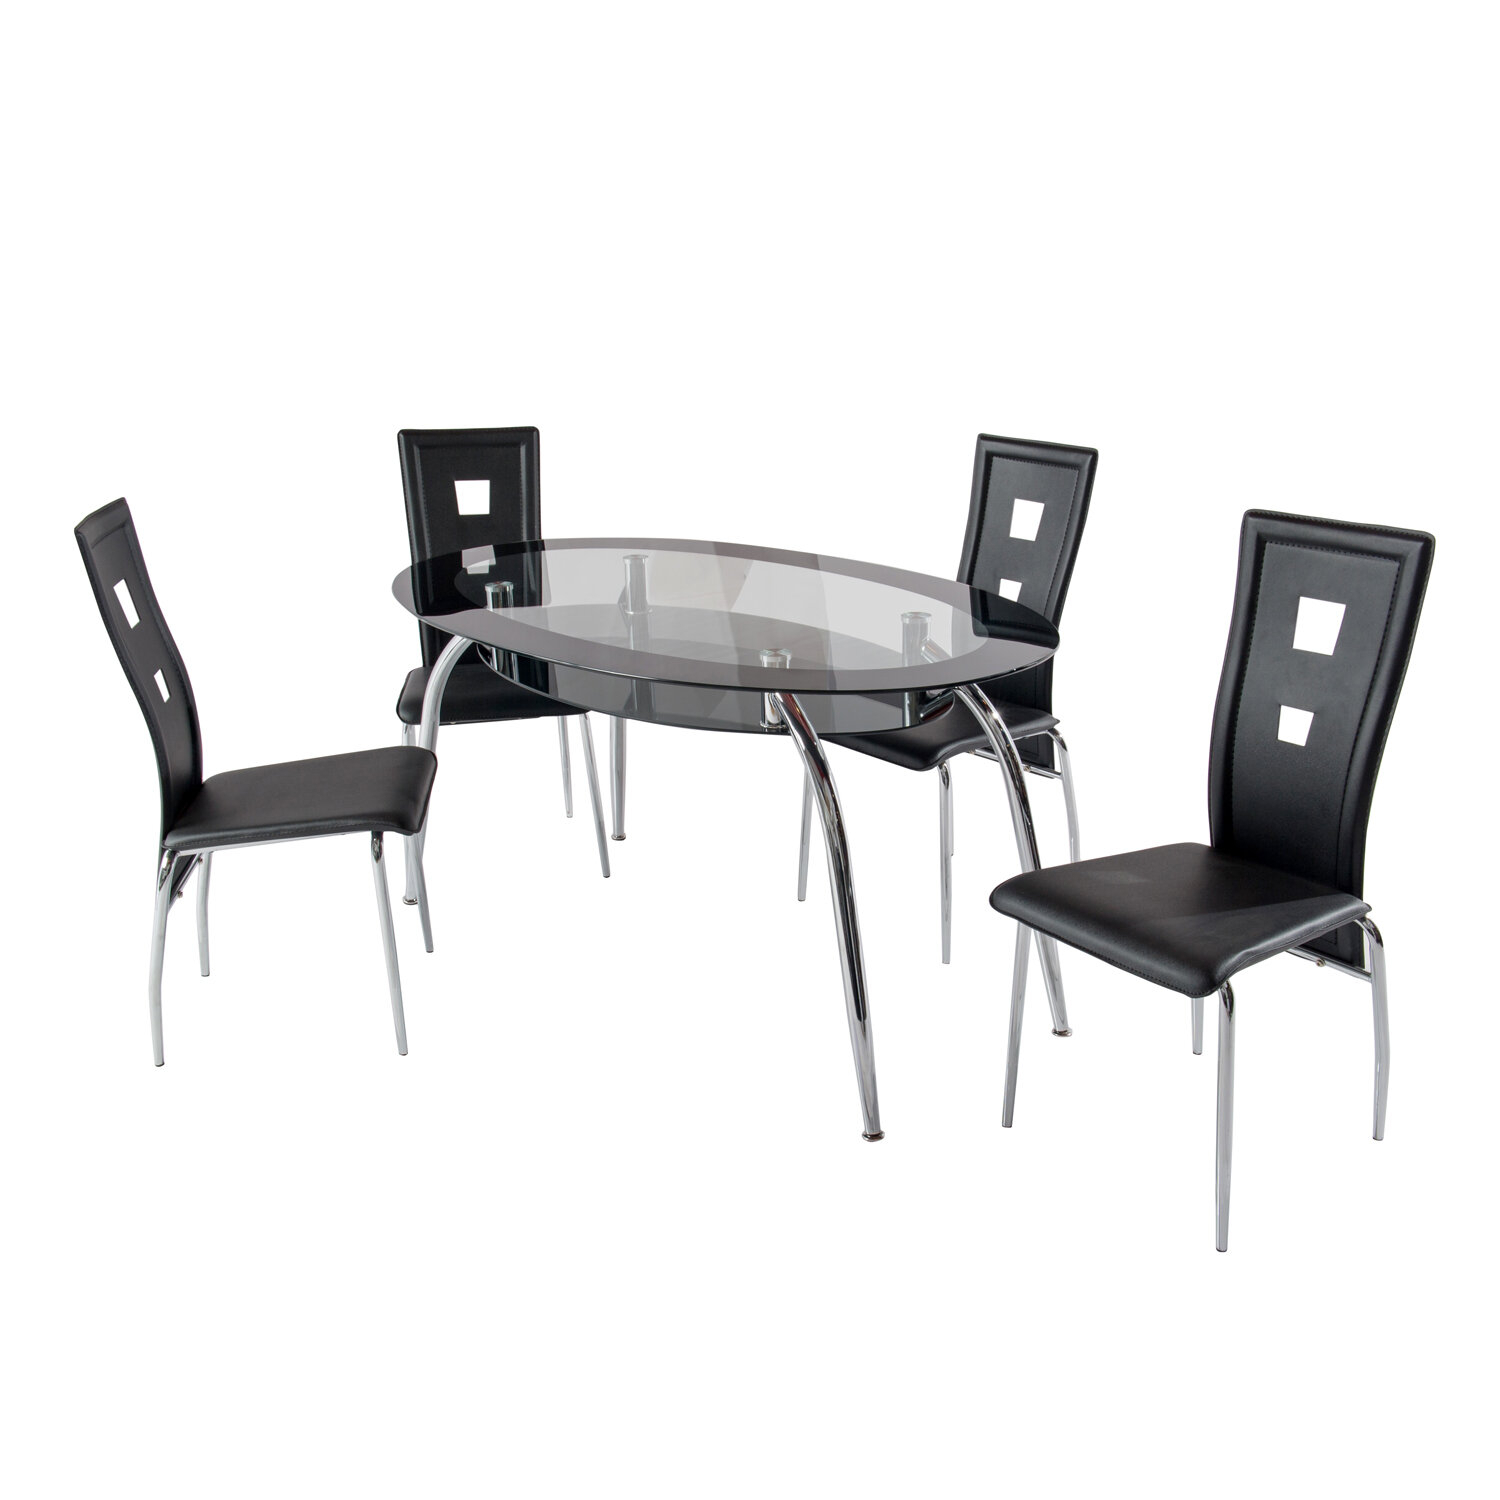 Brookview 5 Piece Dining Set Intended For Newest Linette 5 Piece Dining Table Sets (View 7 of 20)